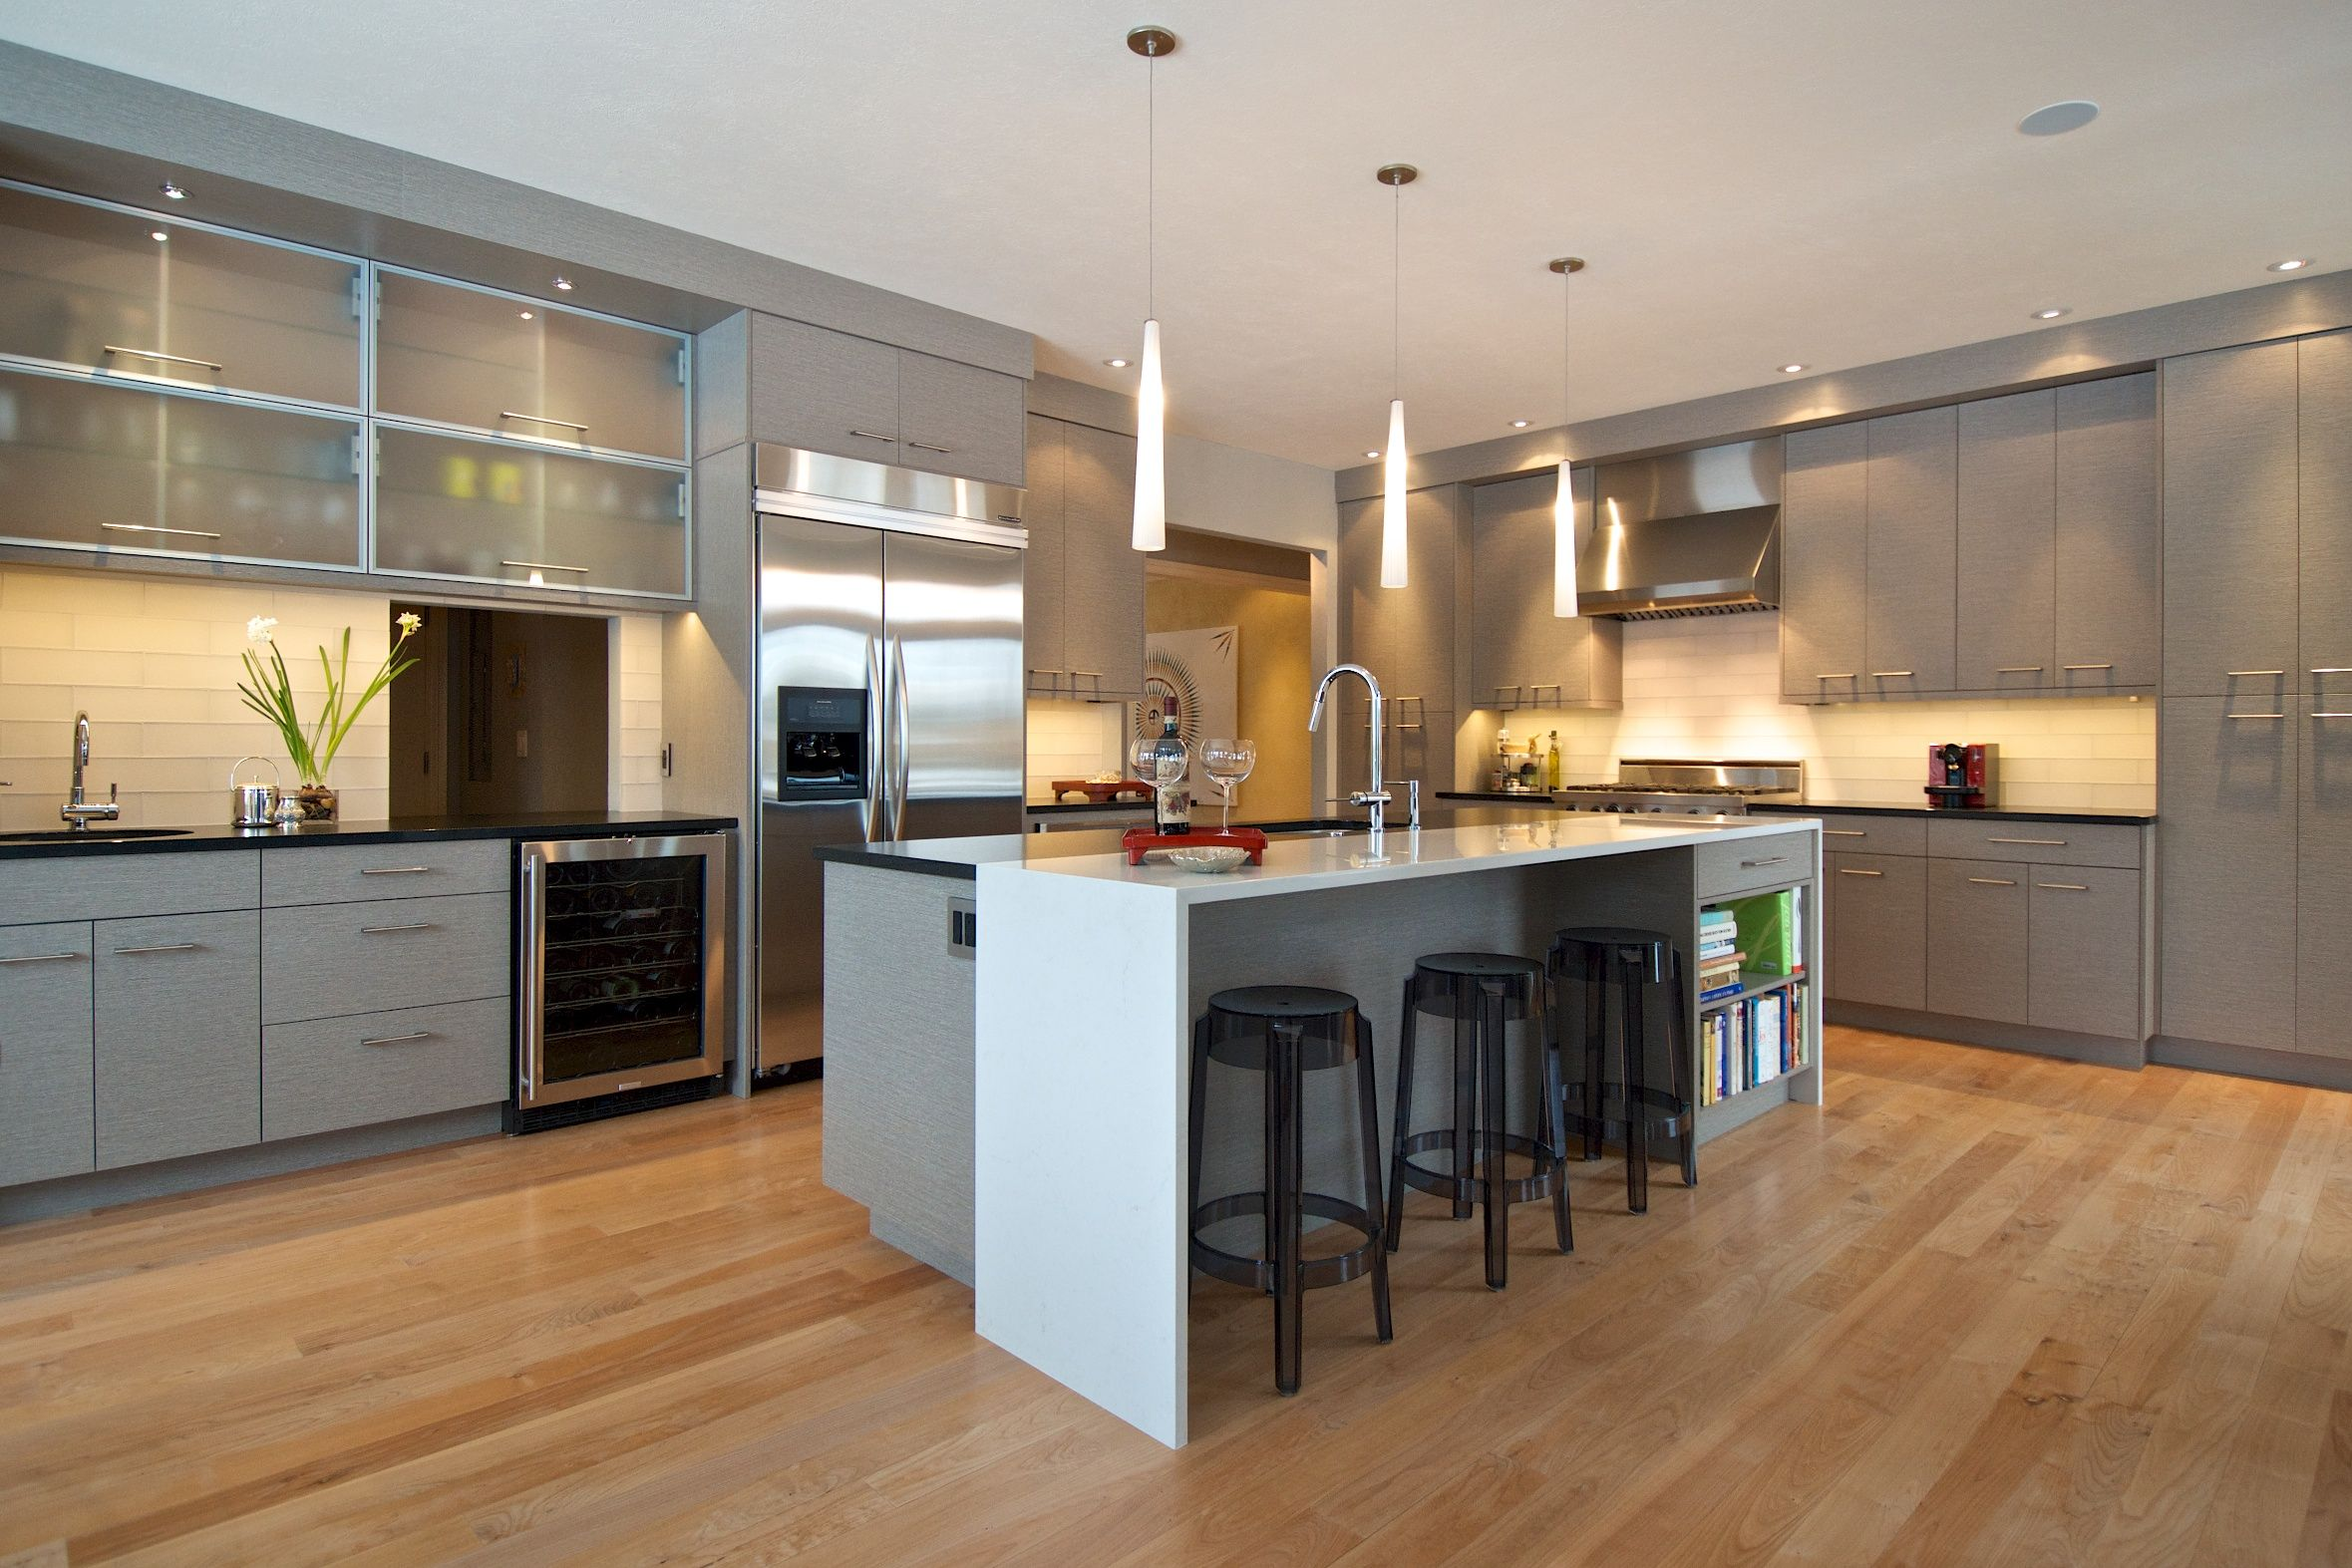 Textured Melamine Contemporary Waterfall Countertop Mcphie Cabinetry Waterfall Countertop Countertops Cabinetry